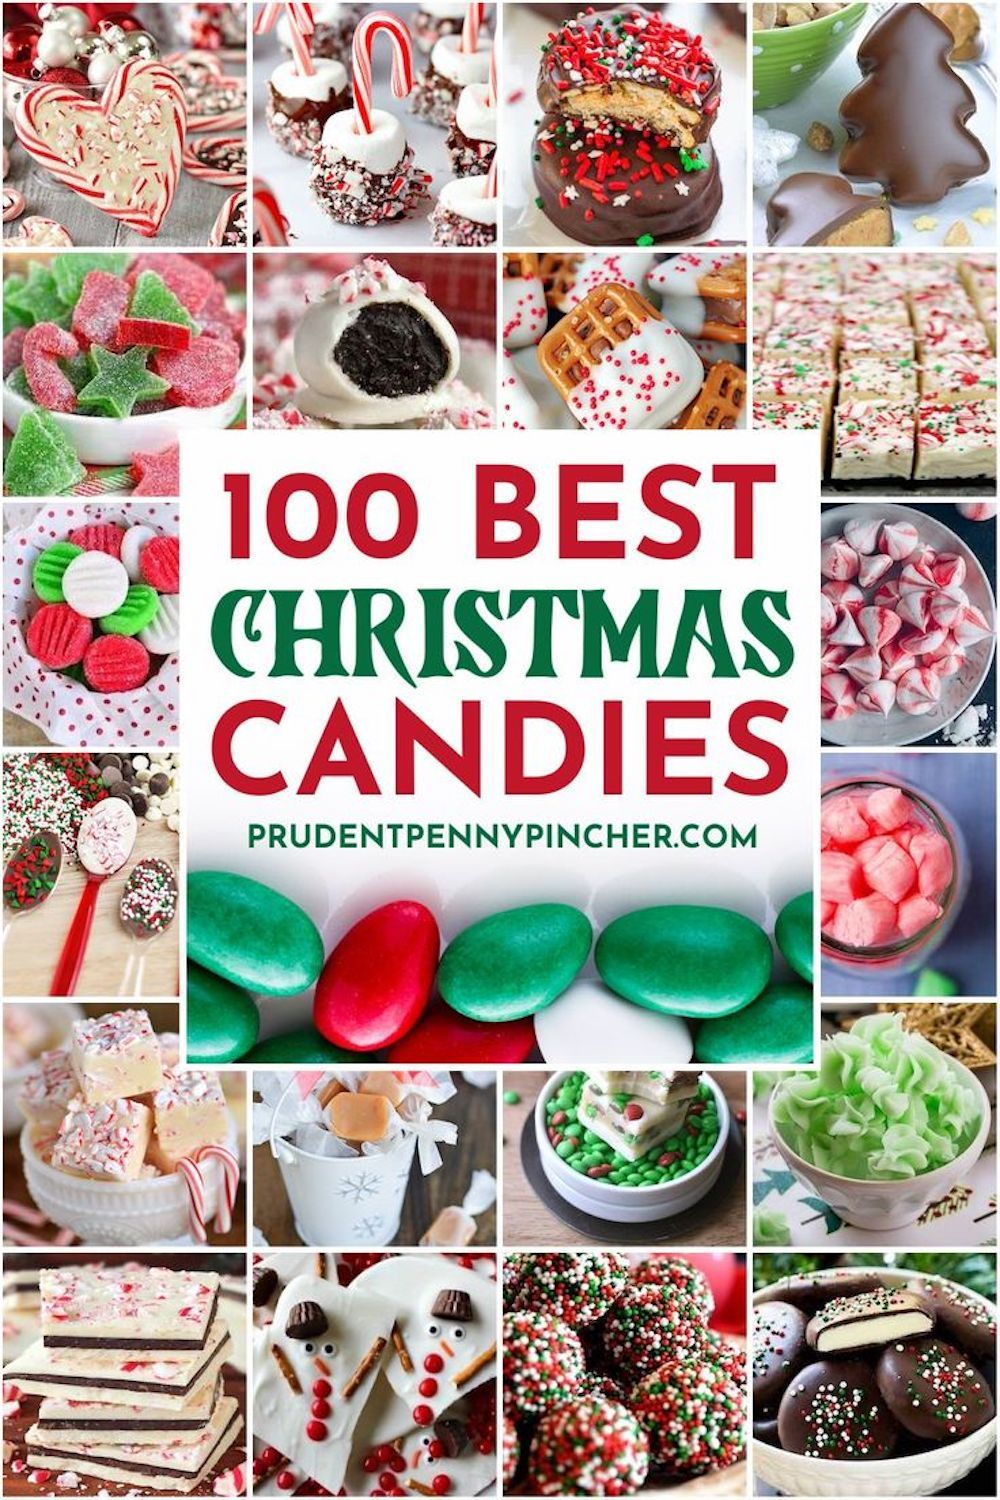 2020 Christmas Candy Recipes 100 Best Christmas Candy Recipes in 2020 | Christmas dessert